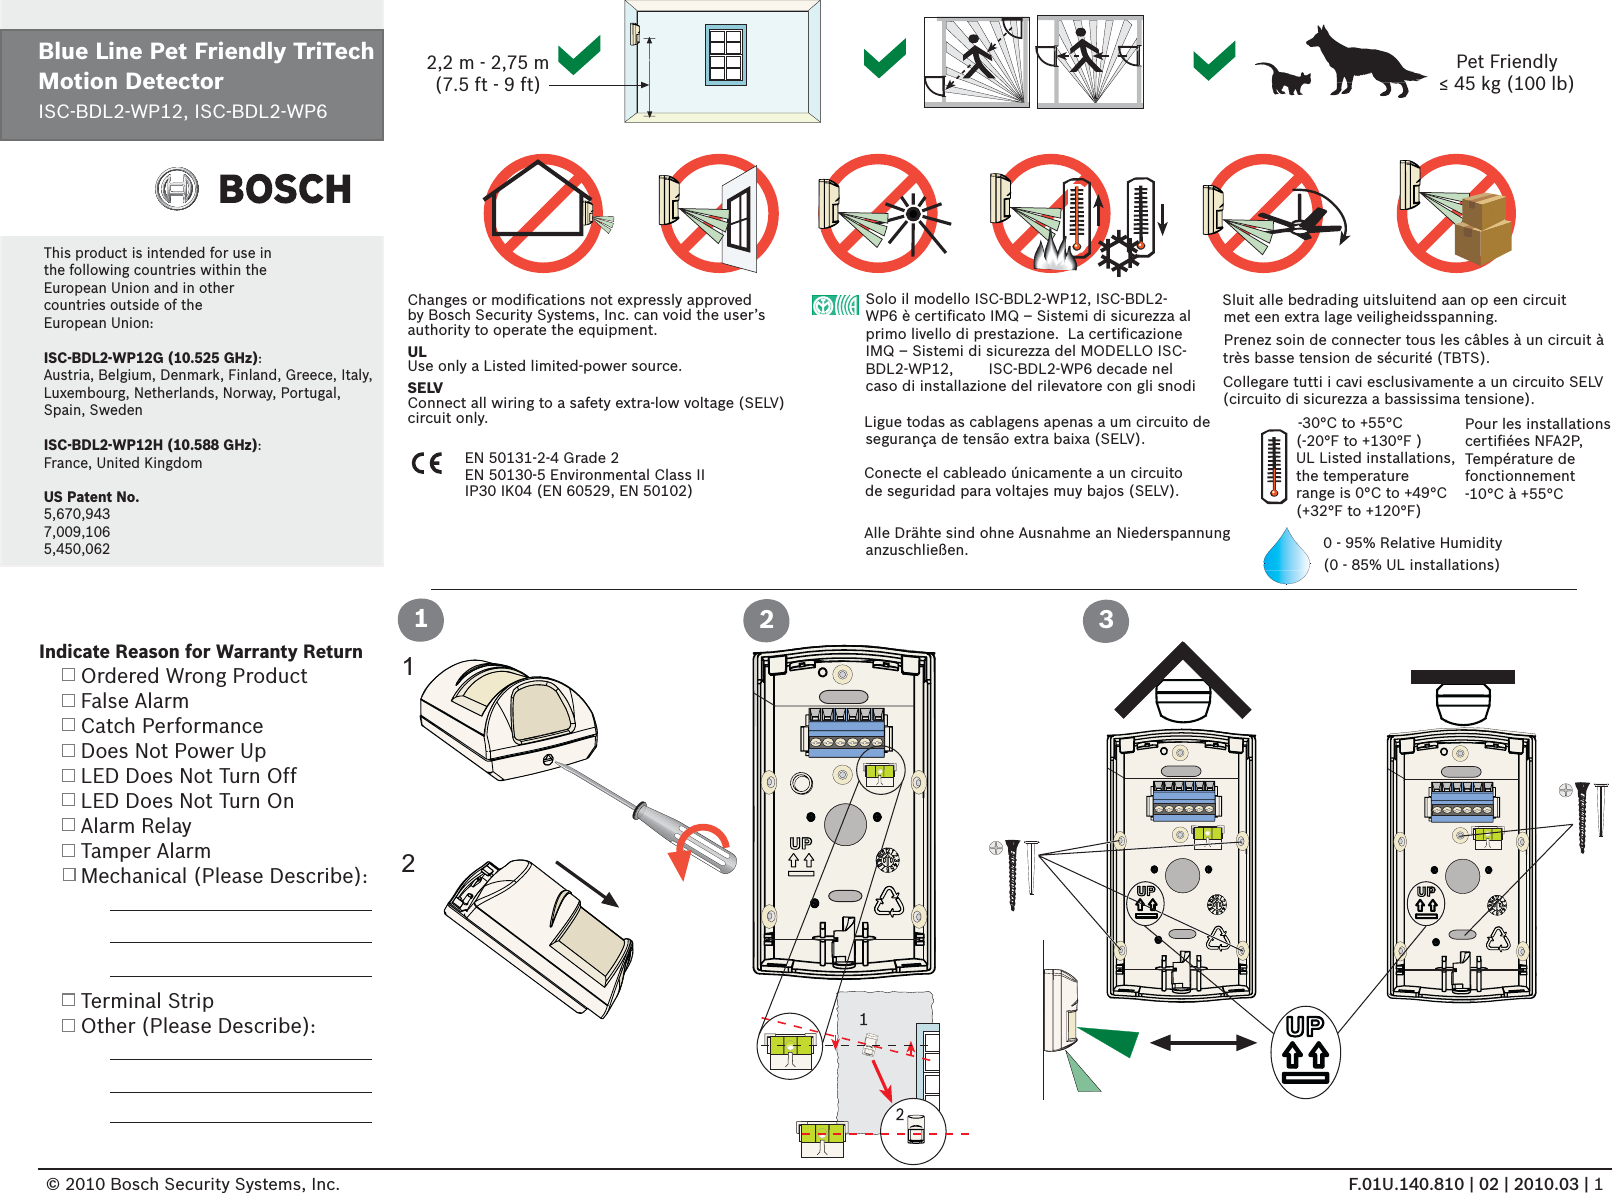 Wiring Diagram Bosch Motion Eureka Vacuum Dremel On Nordictrack Foscam